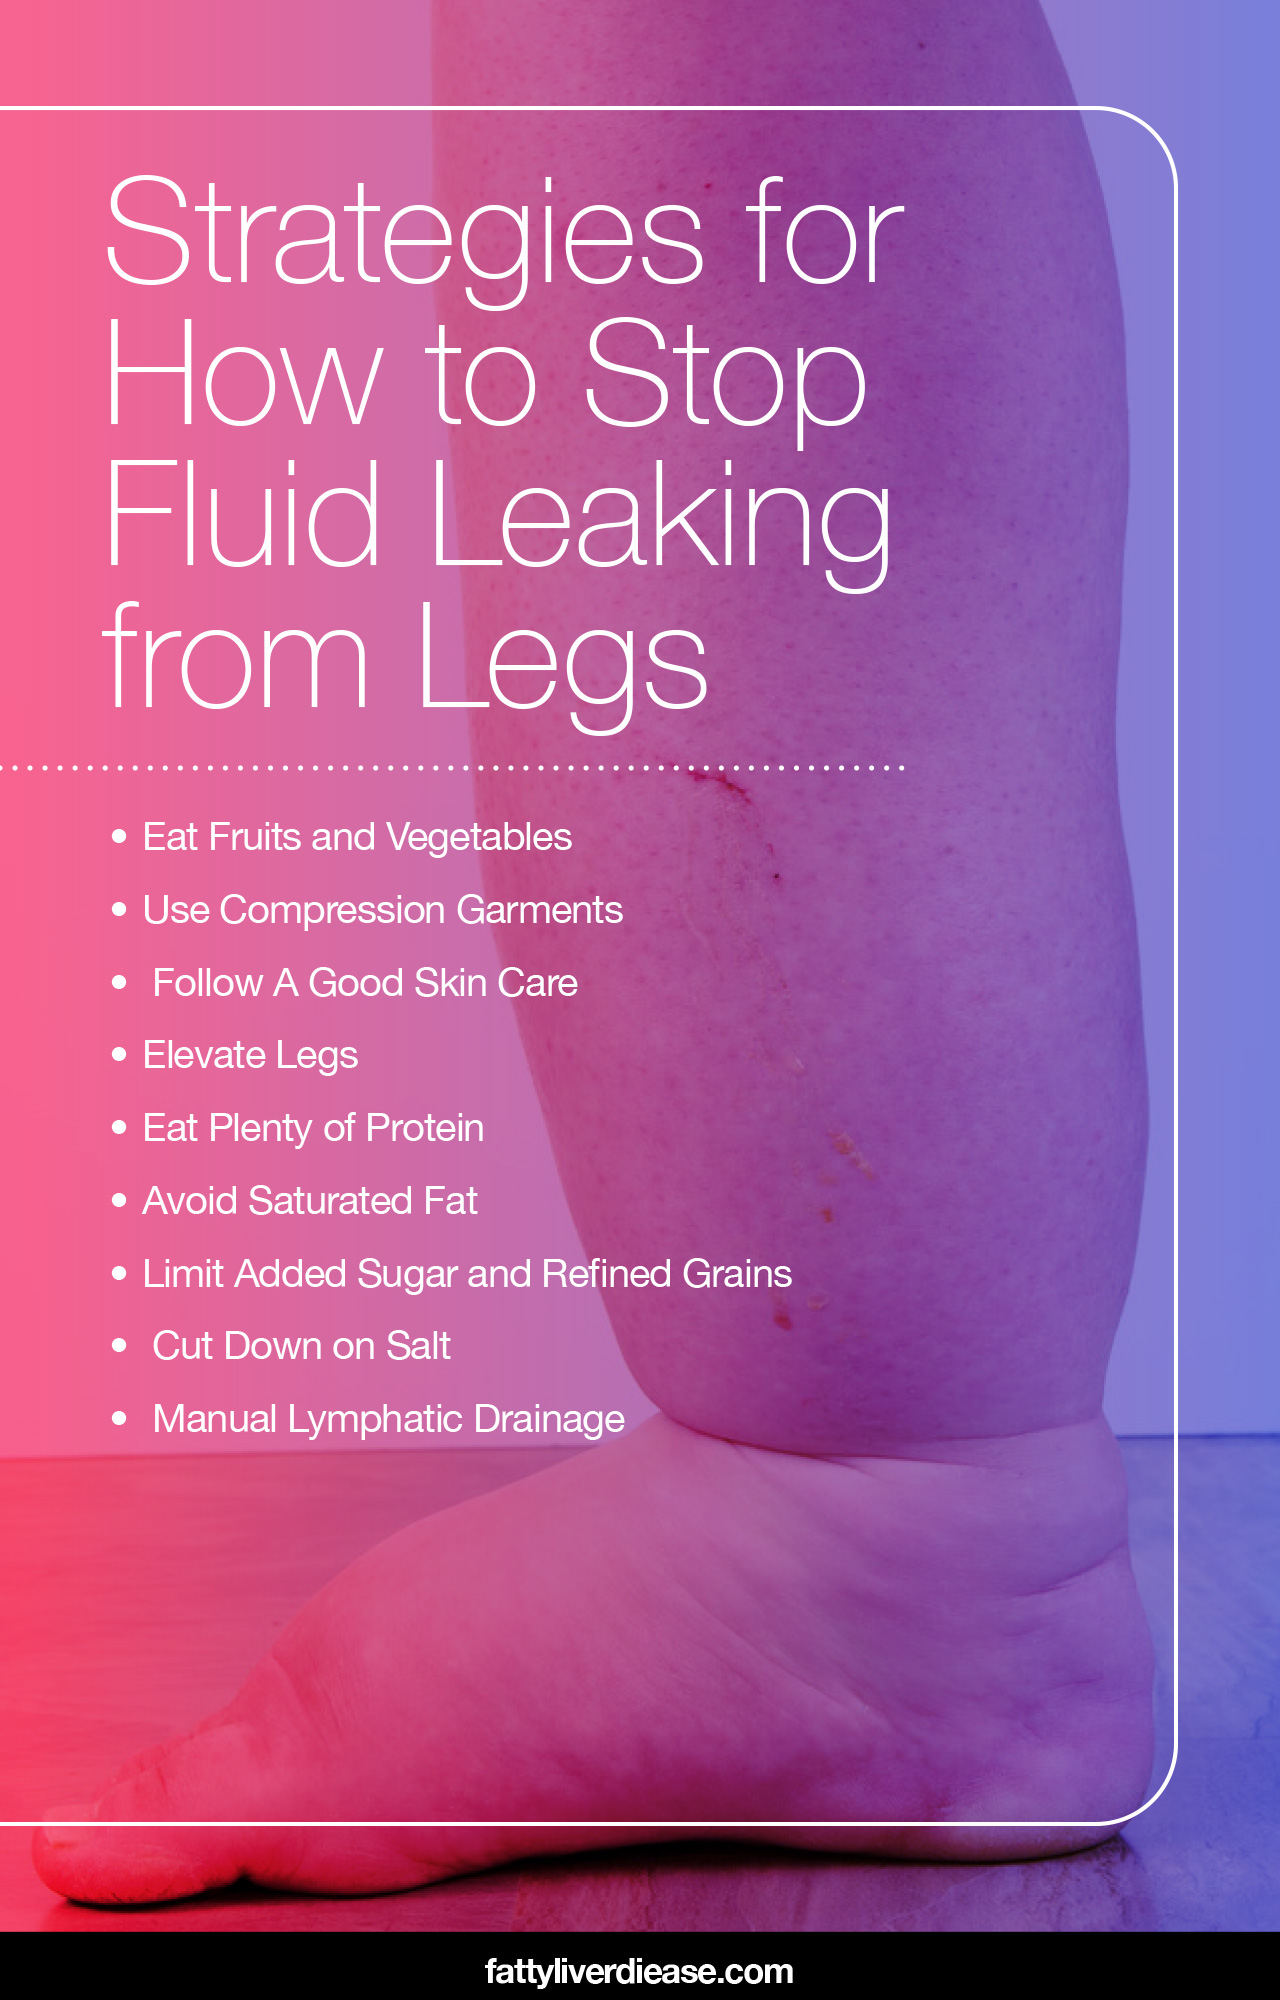 how to stop fluid leaking from legs